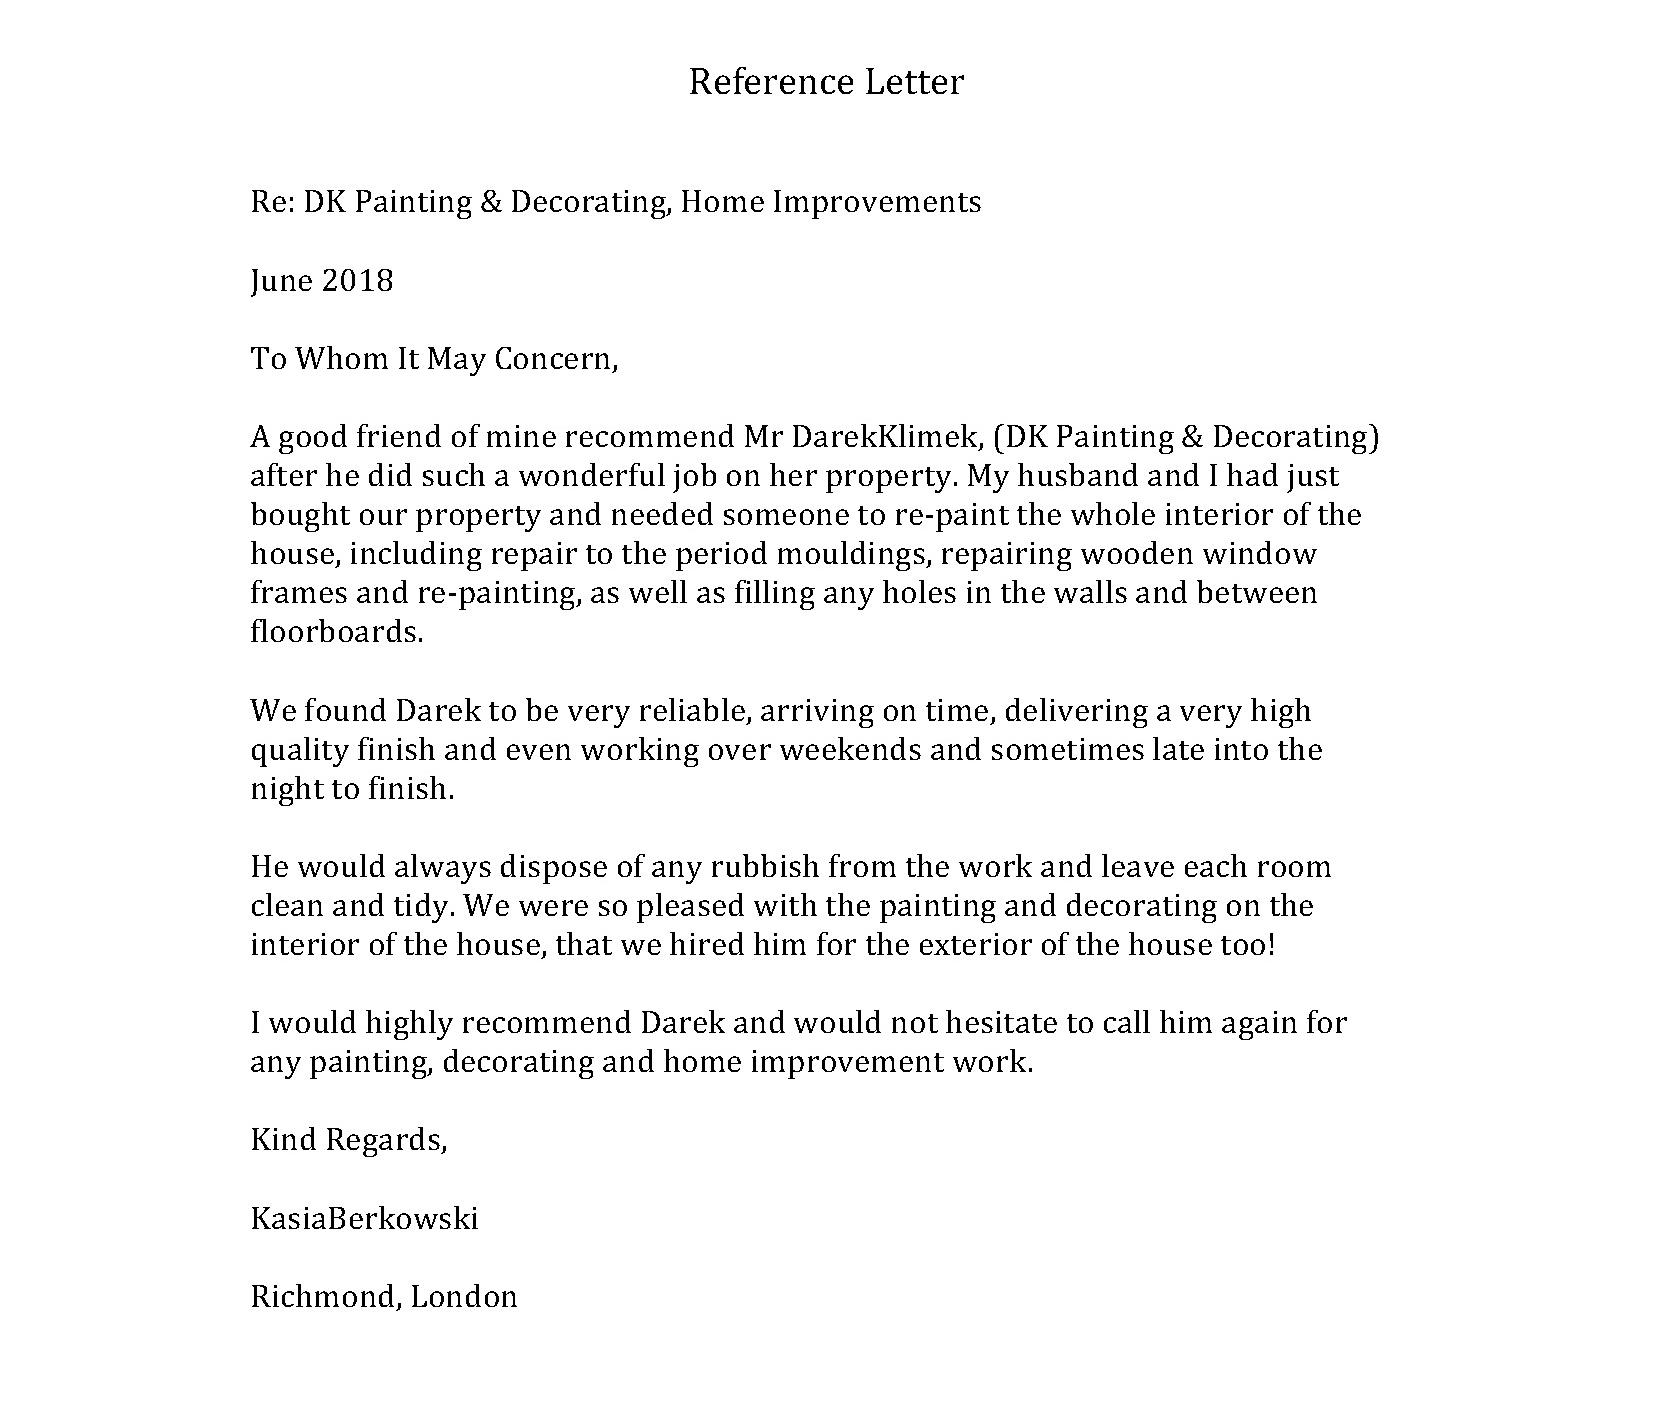 Reference Letter from KasiaBerkowski